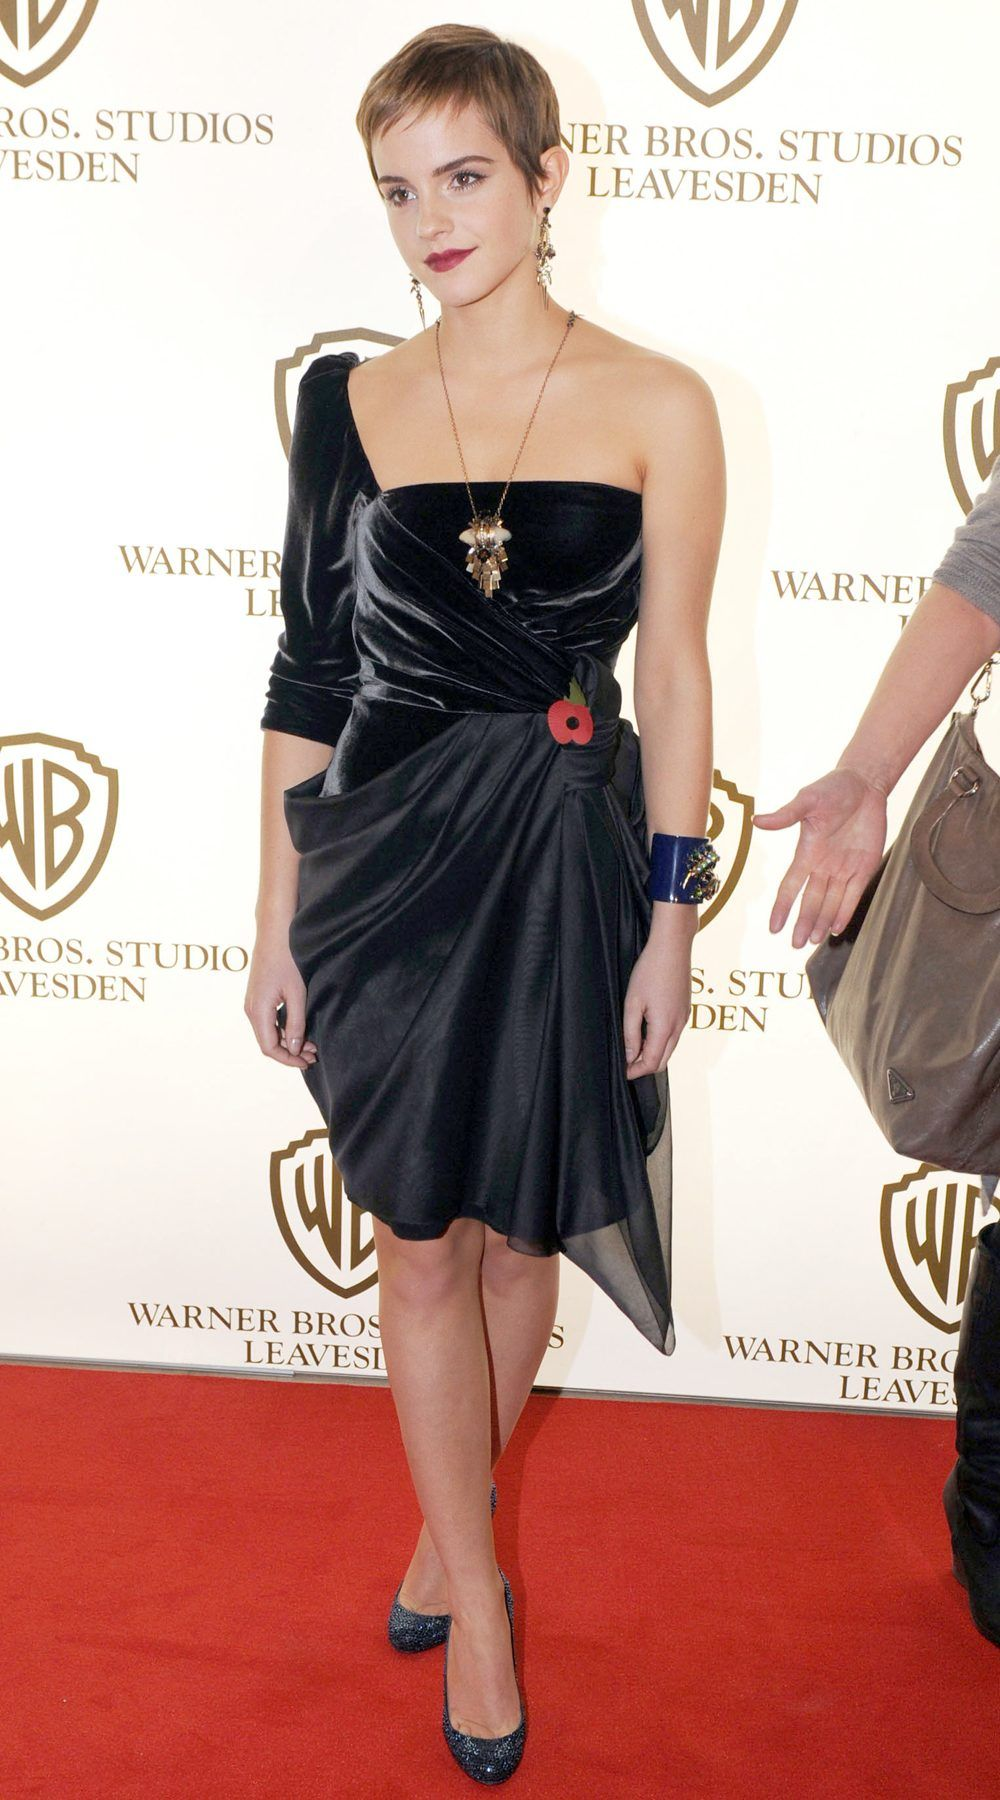 Can you believe how much Emma Watson's style has changed over time photo